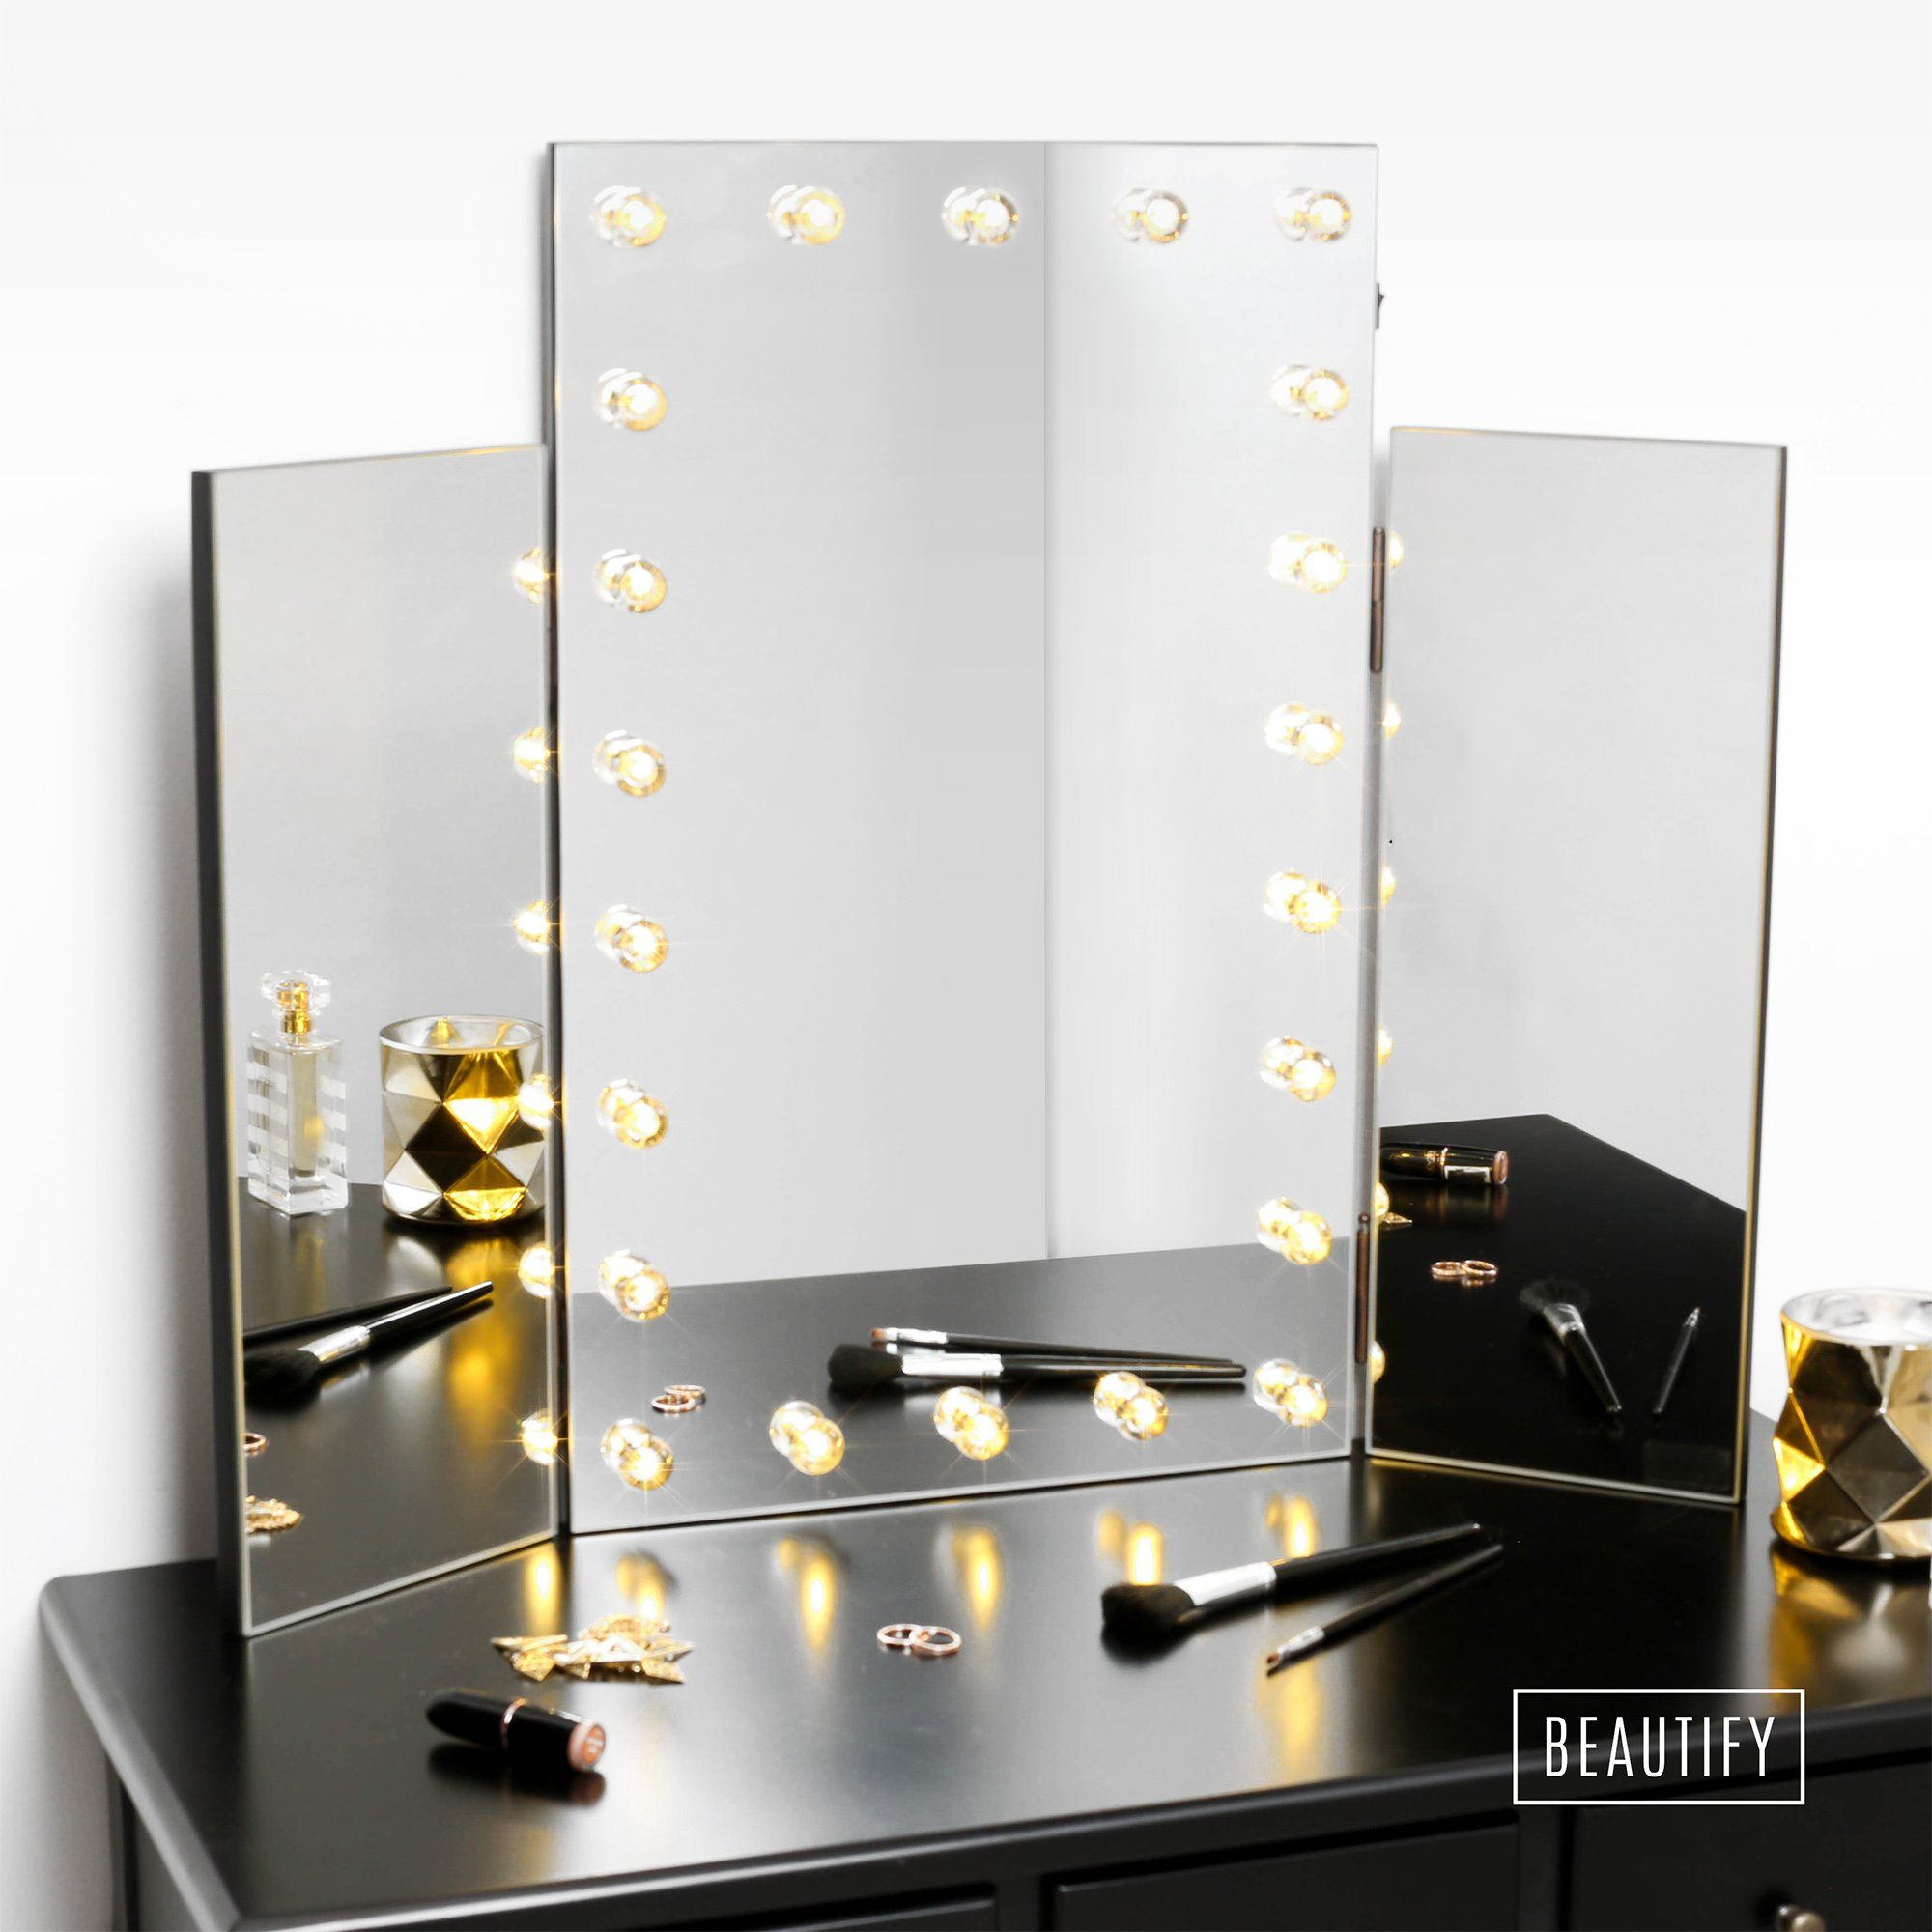 Tri Fold Vanity Mirror With Lights Beautify Large Trifold Hollywood Lighted Makeup Dressing Table